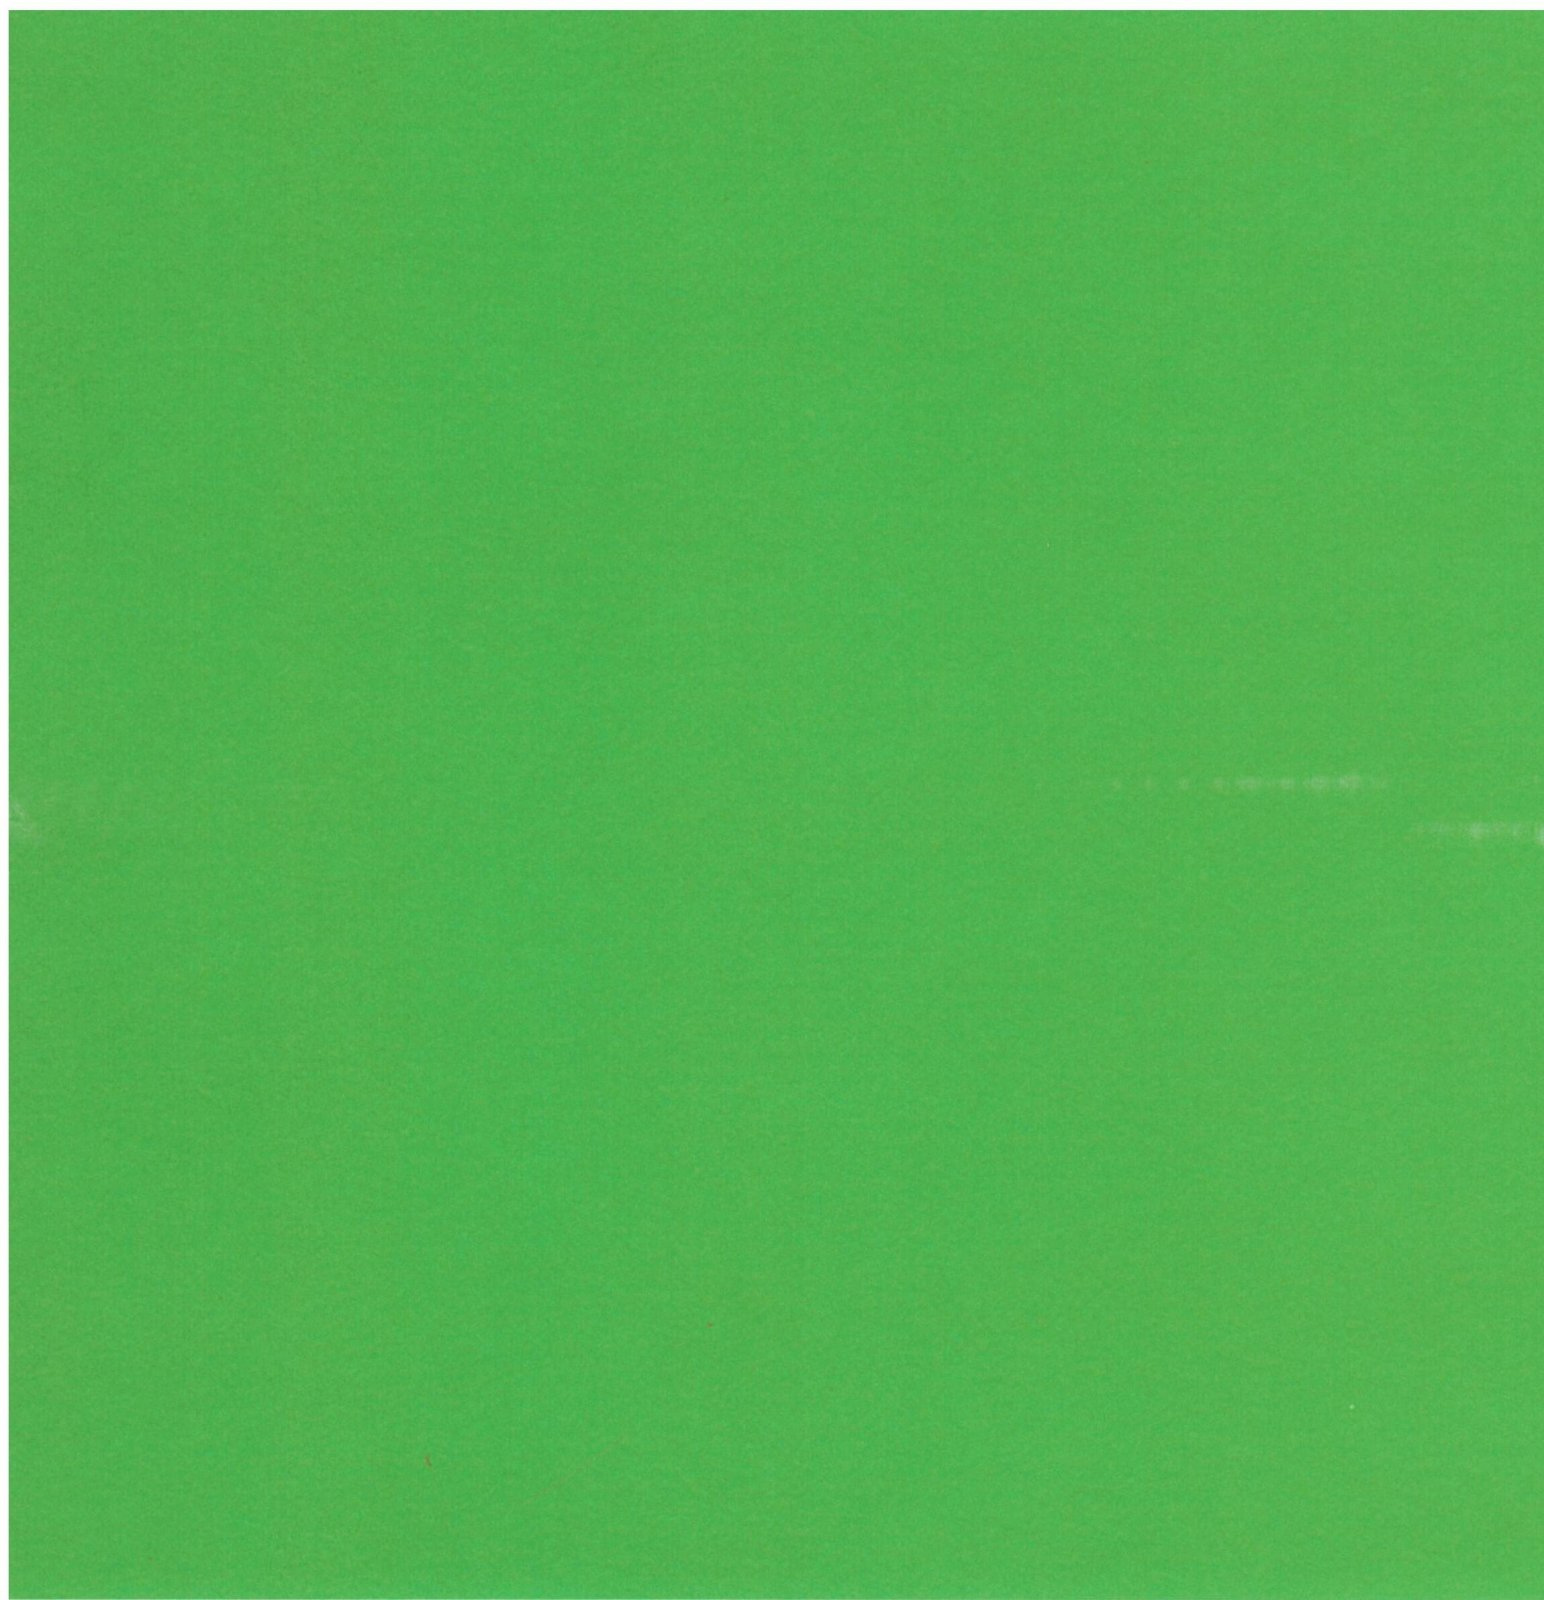 AC Cardstock 12X12 doux/lisse Pelouse 80lbs - Smooth Cardstock, Grass Item # 71778